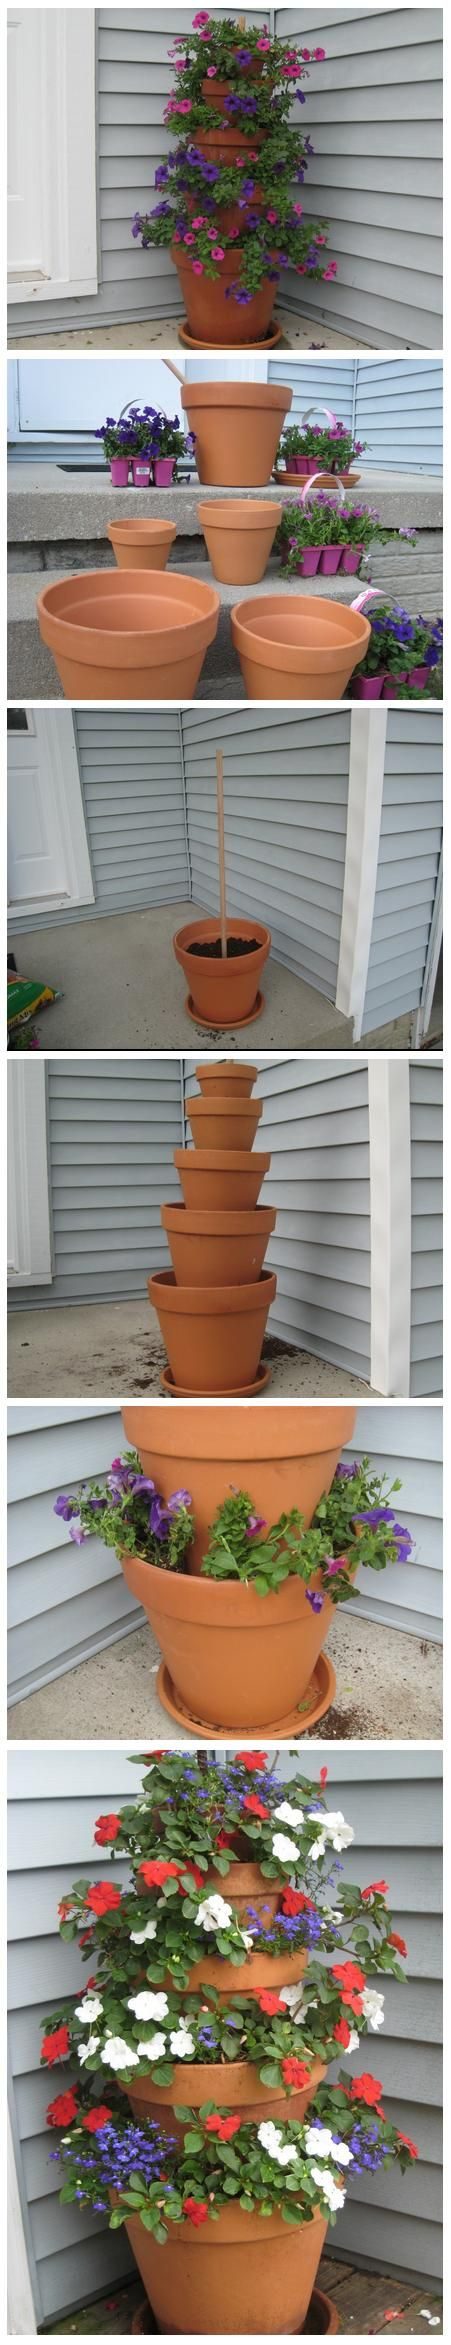 Terra Cotta Pot Flower Tower with Annuals. This would be great for herbs or strawberries too!